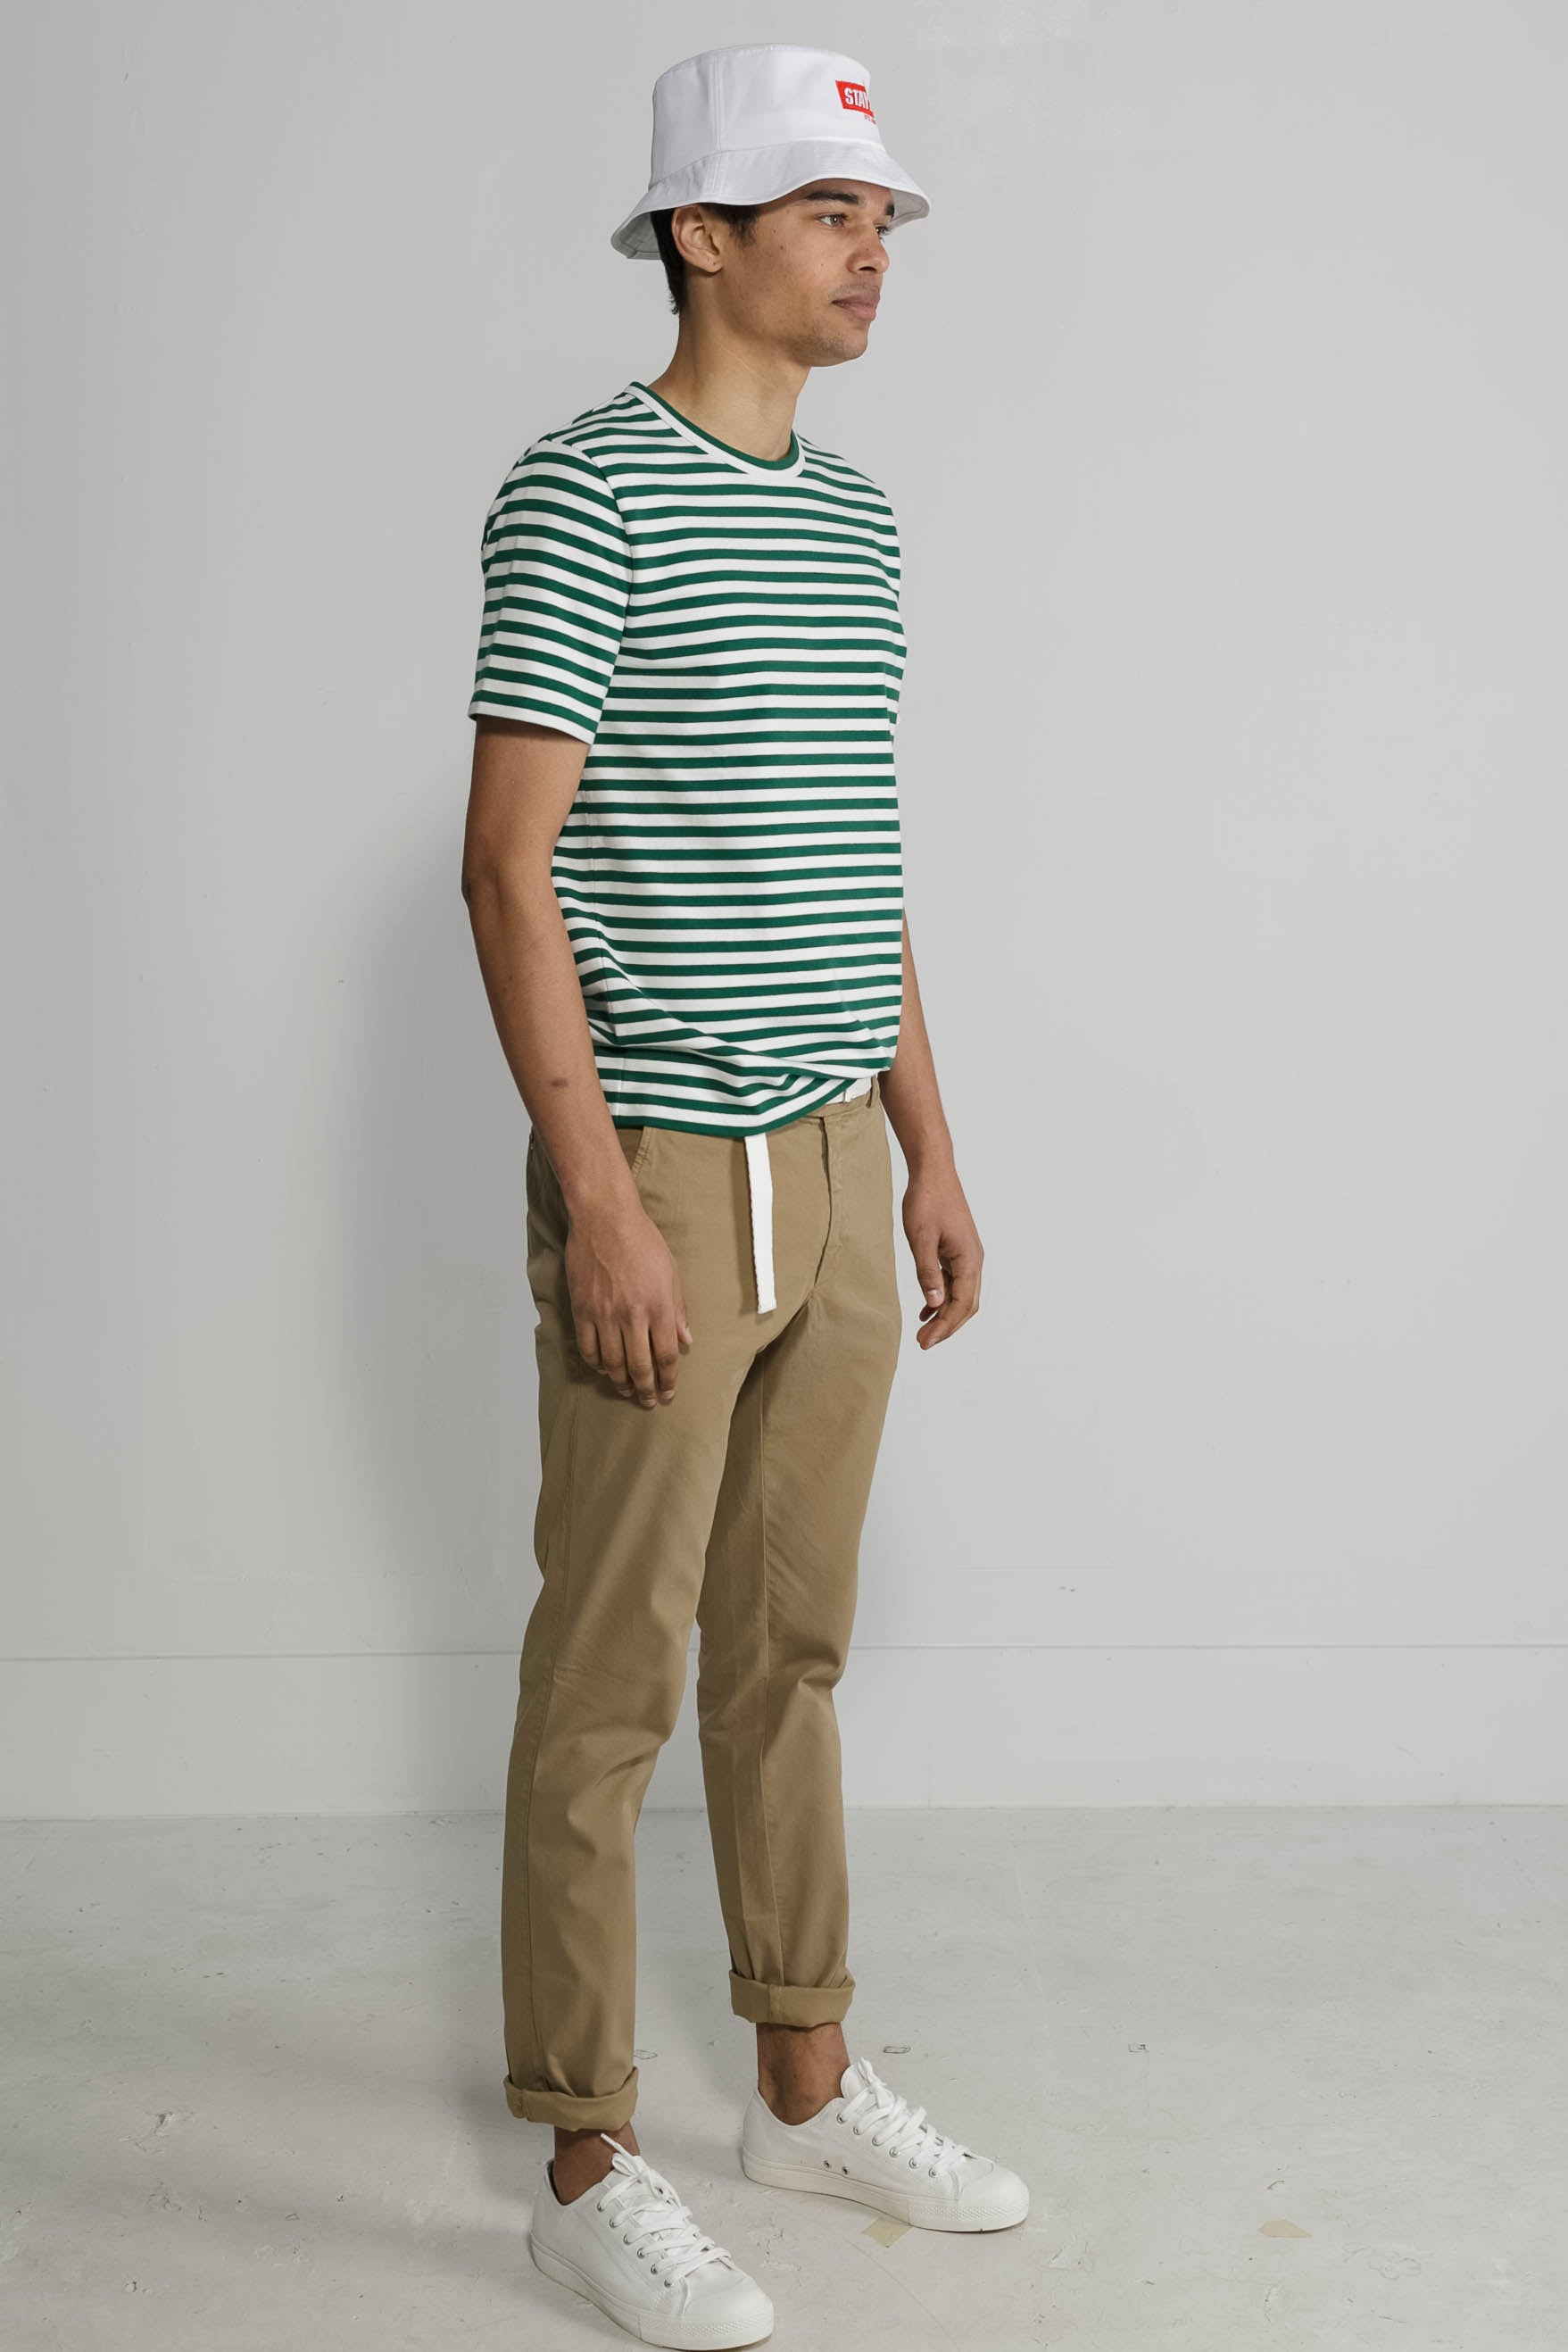 Marine Stripe Crew in White and Green 004